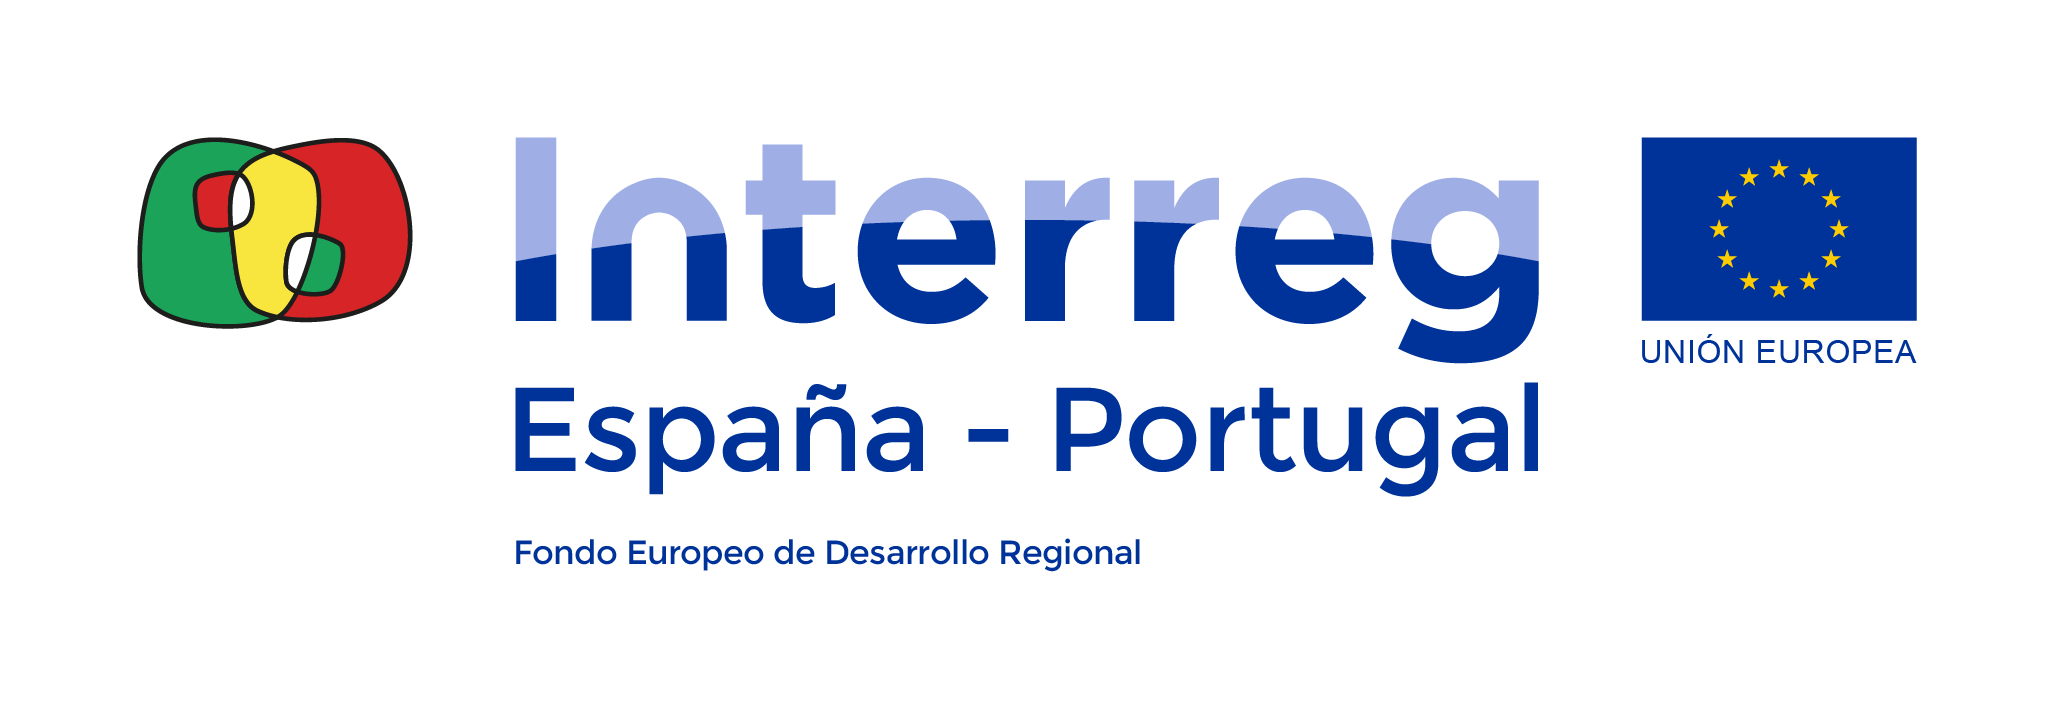 Logotipo Interreg España - Portugal